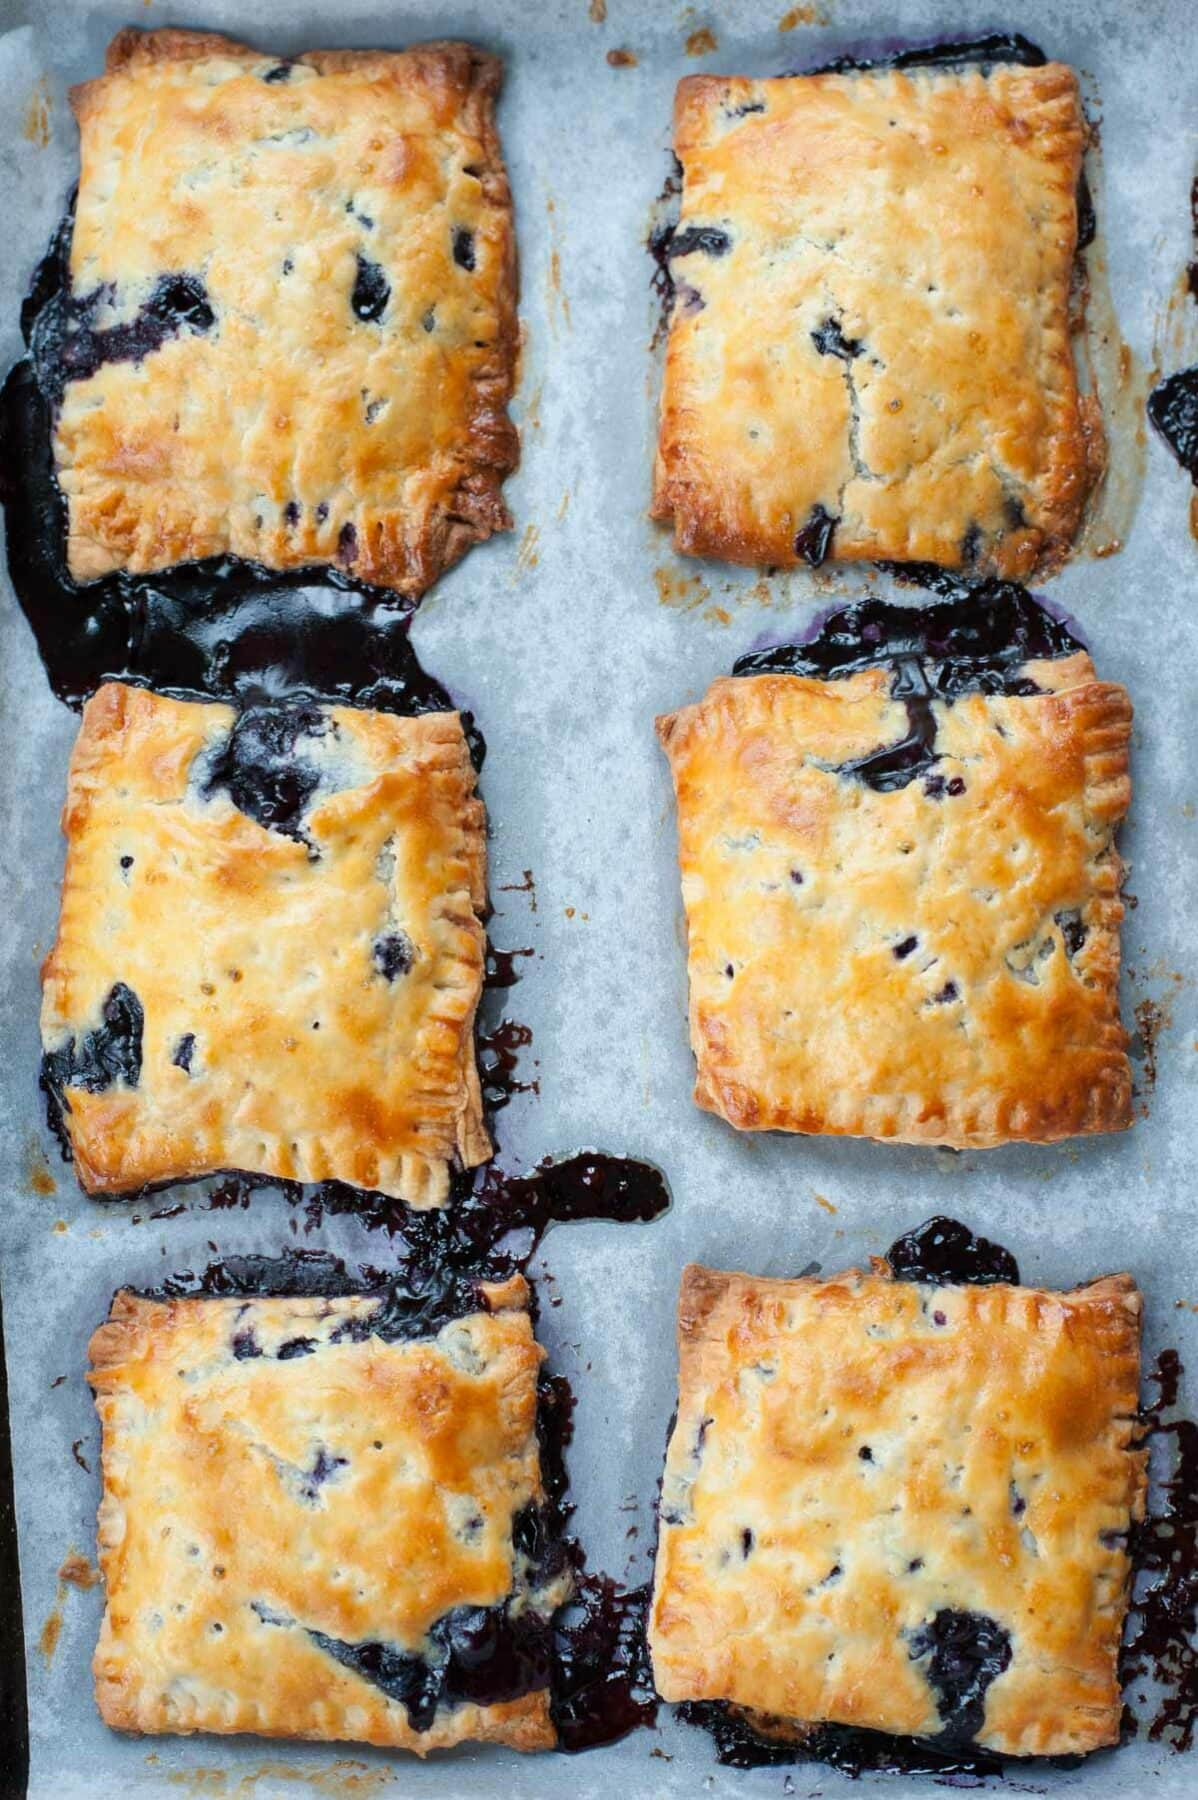 freshly baked blueberry hand pies on a baking paper